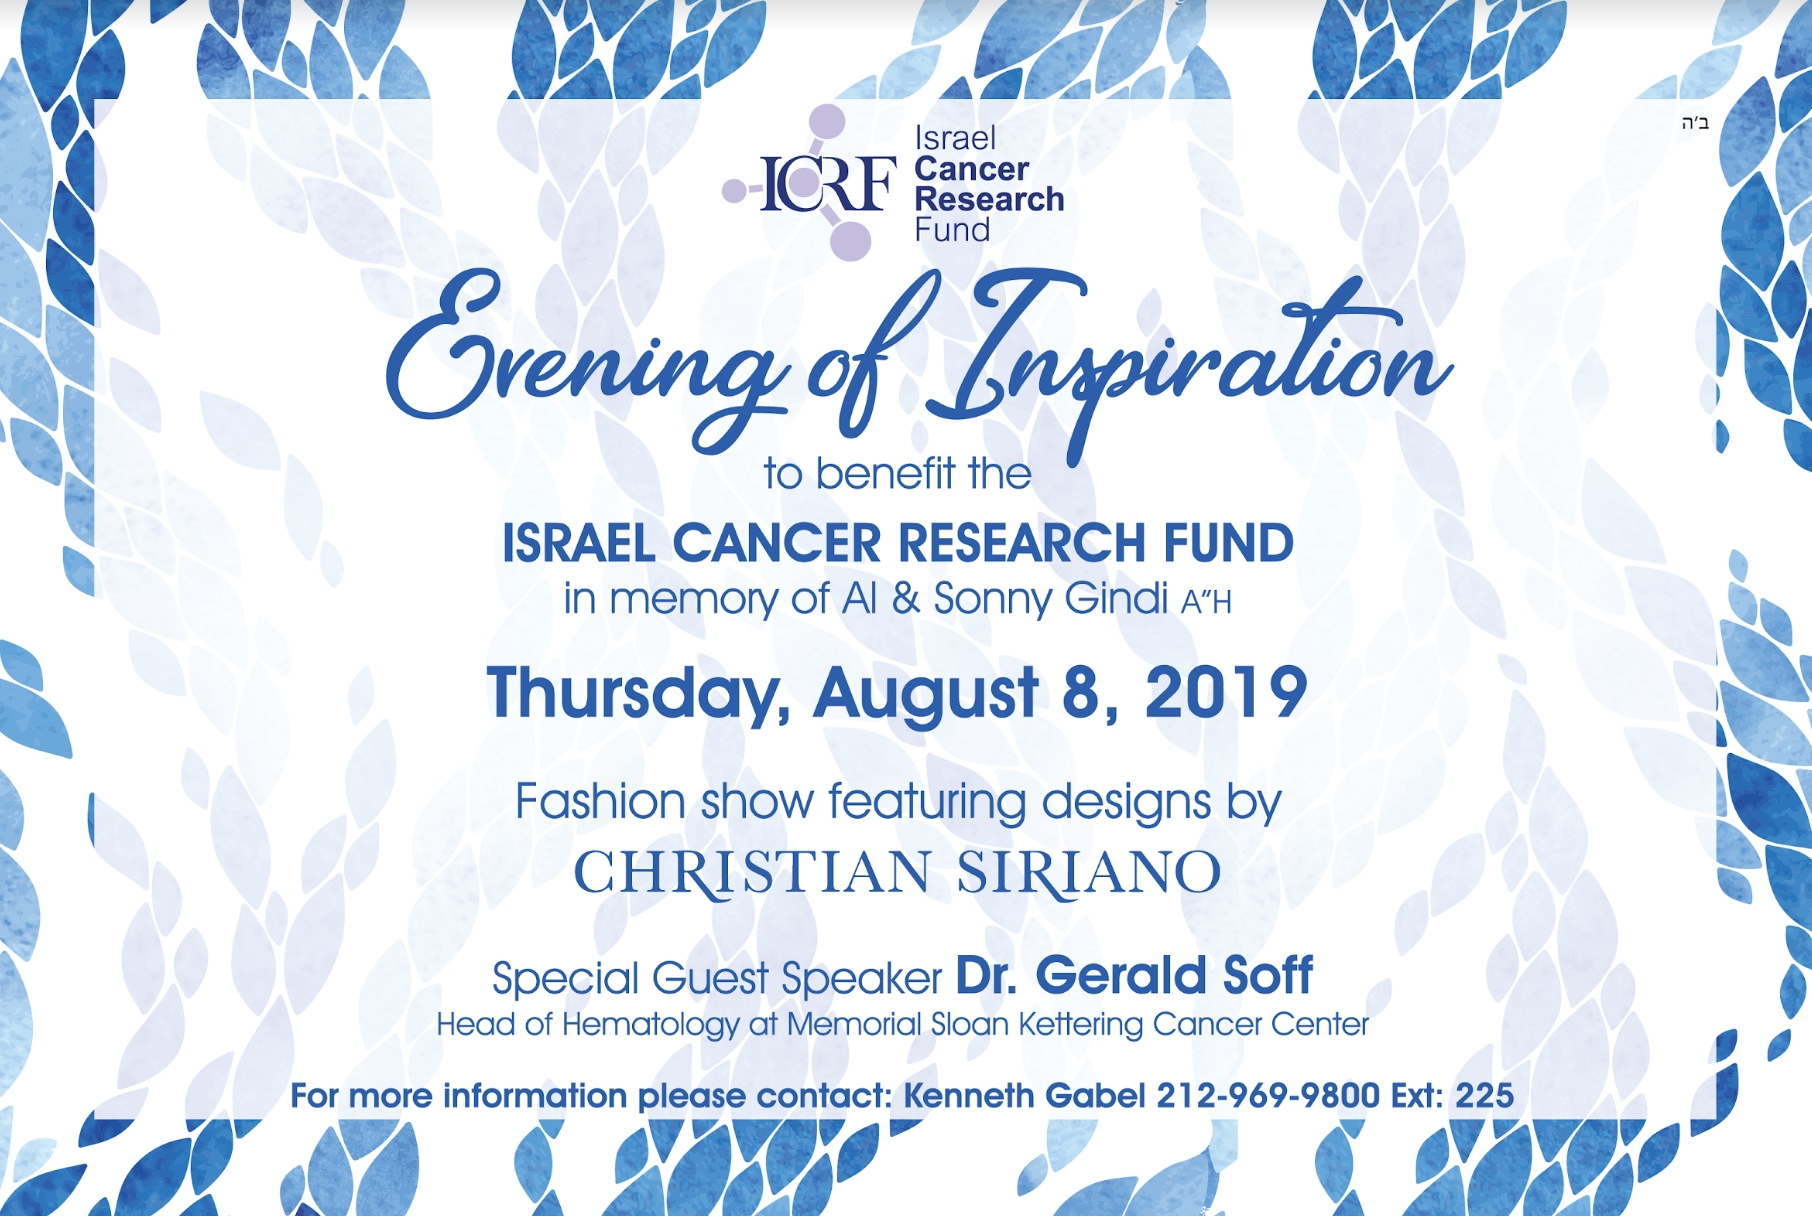 2019-07-24-09_49_32-Search-results-loren.baum@icrfny.org-Israel-Cancer-Research-Fund-Mail